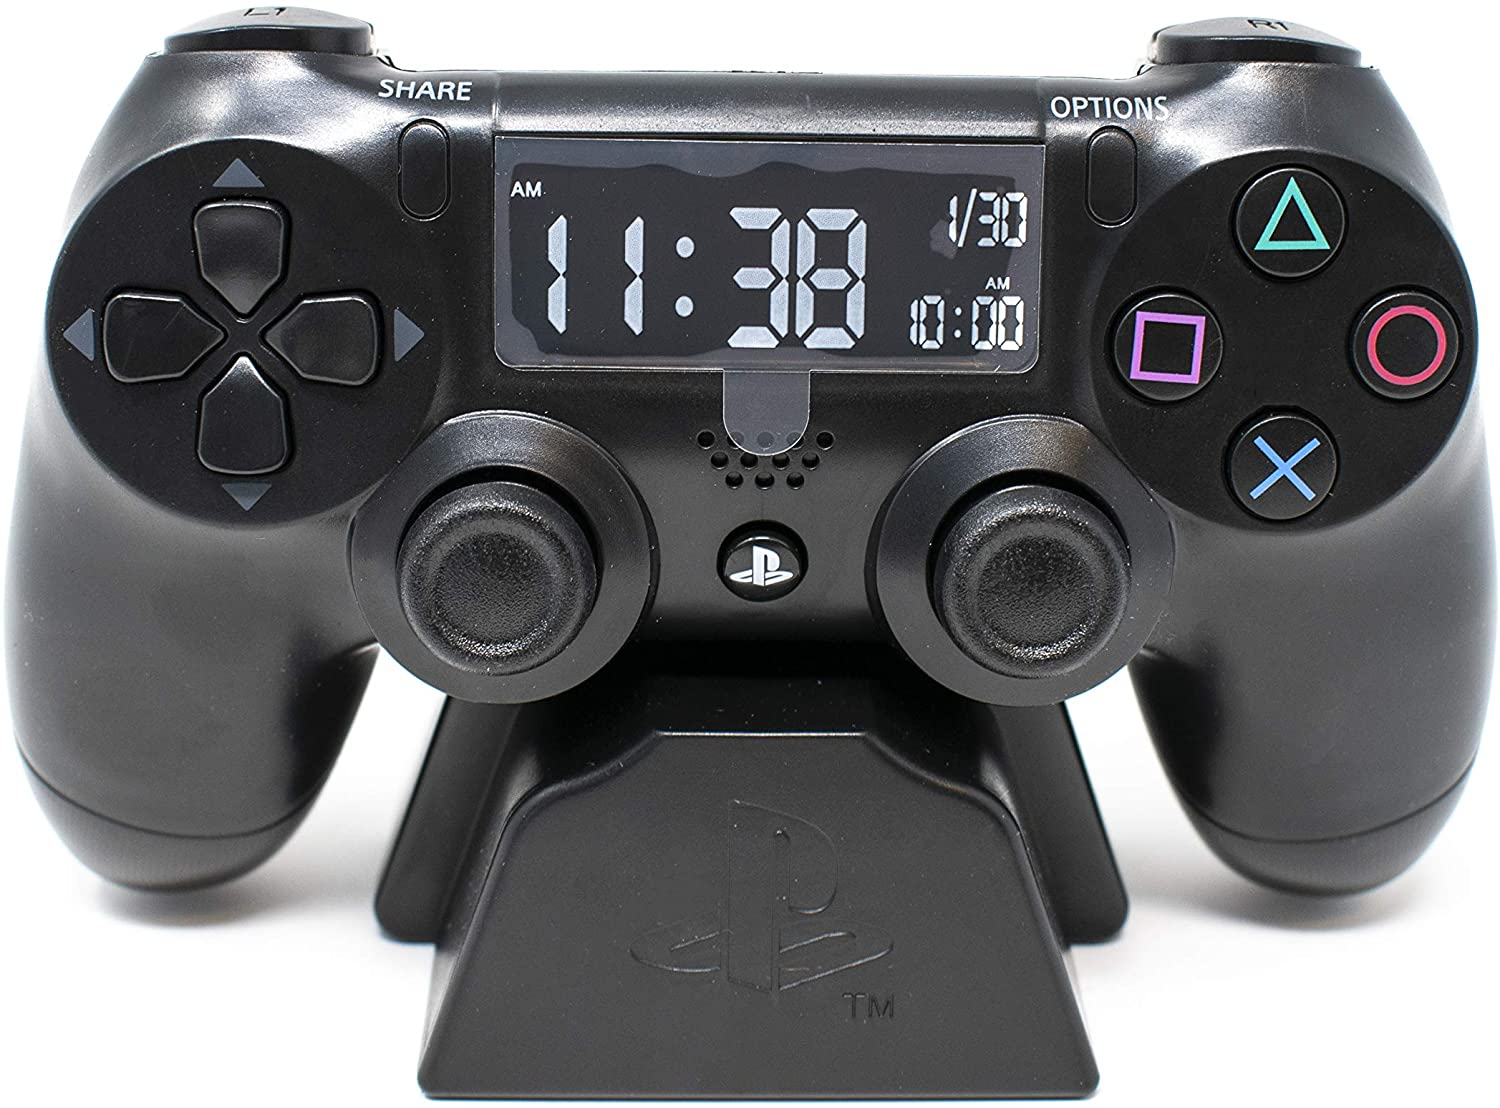 A front look at the PlayStation Controller alarm clock.